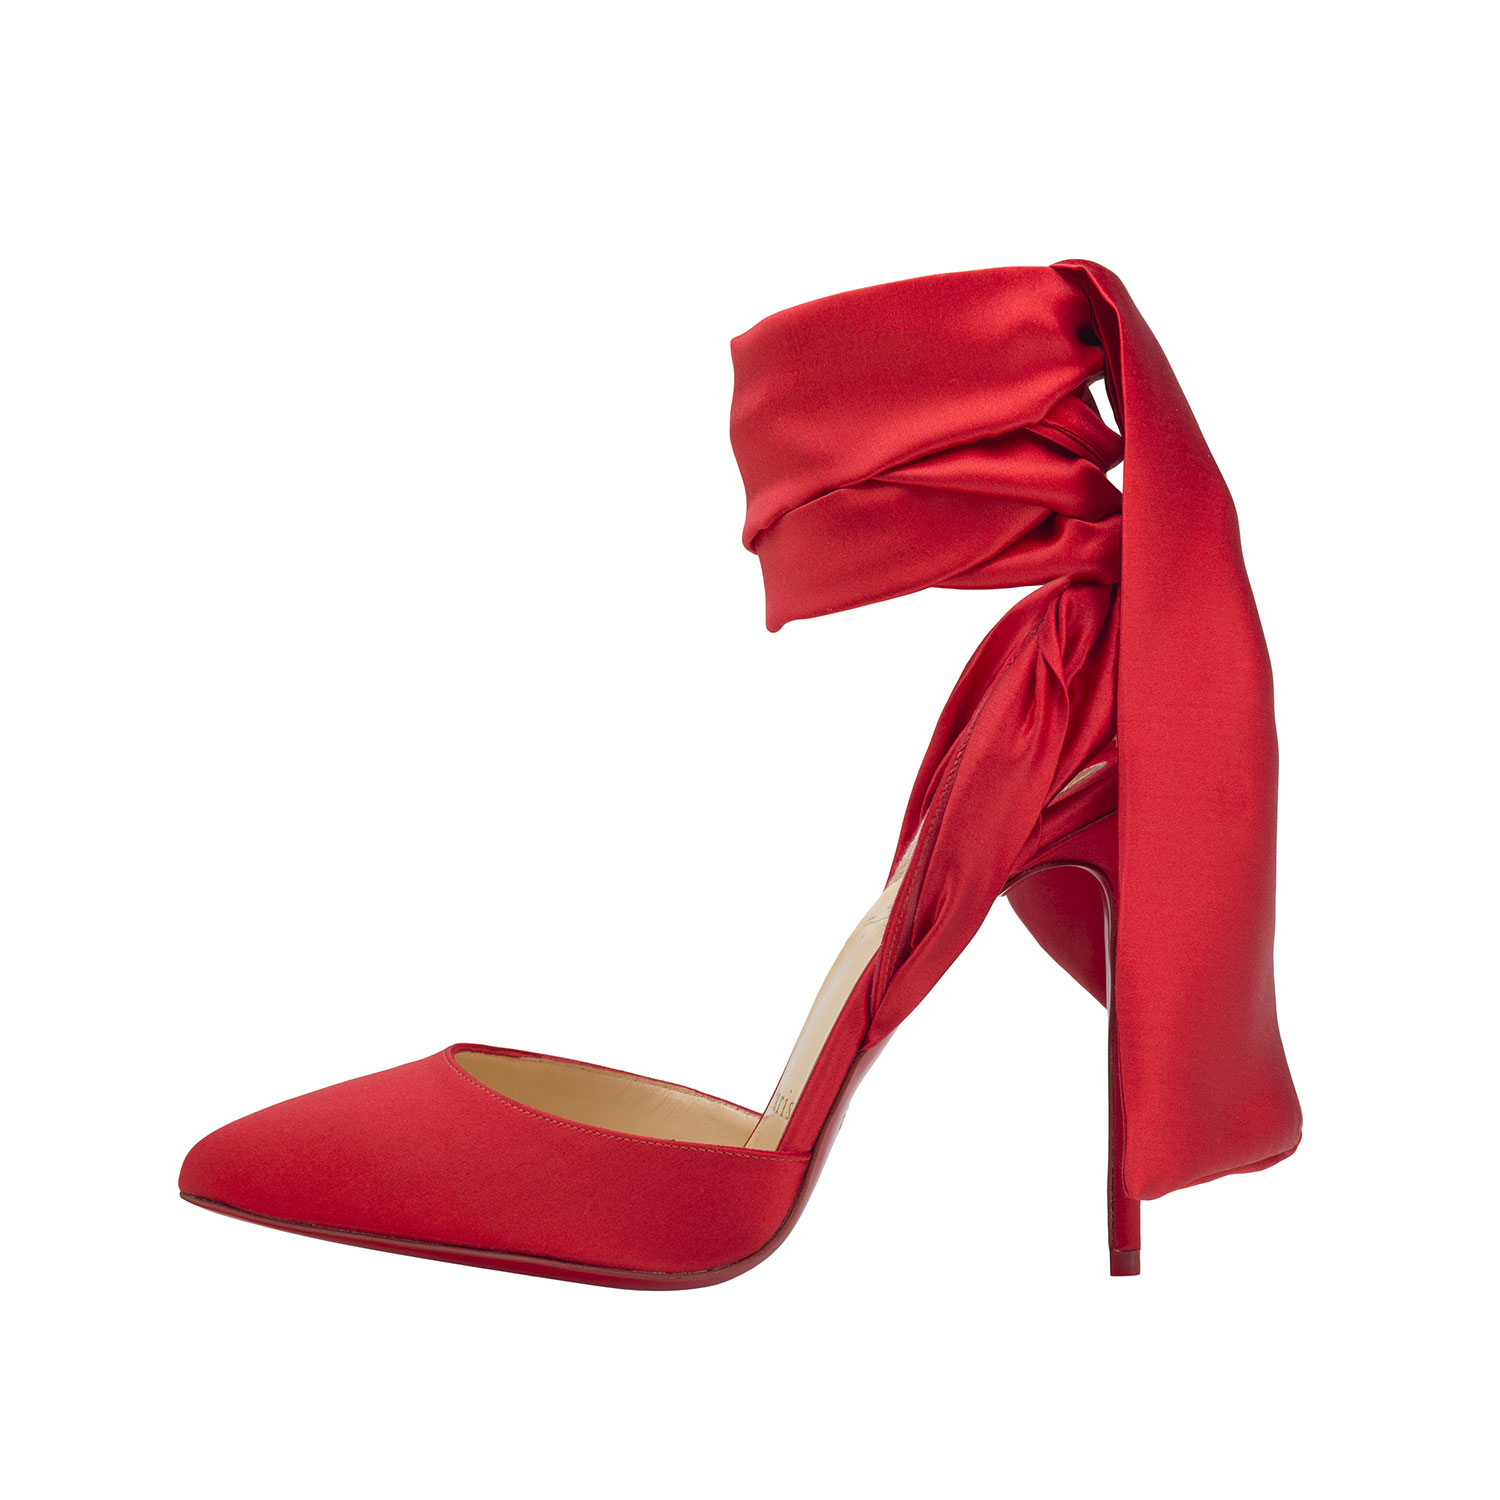 Crepe satin flamenco shoe